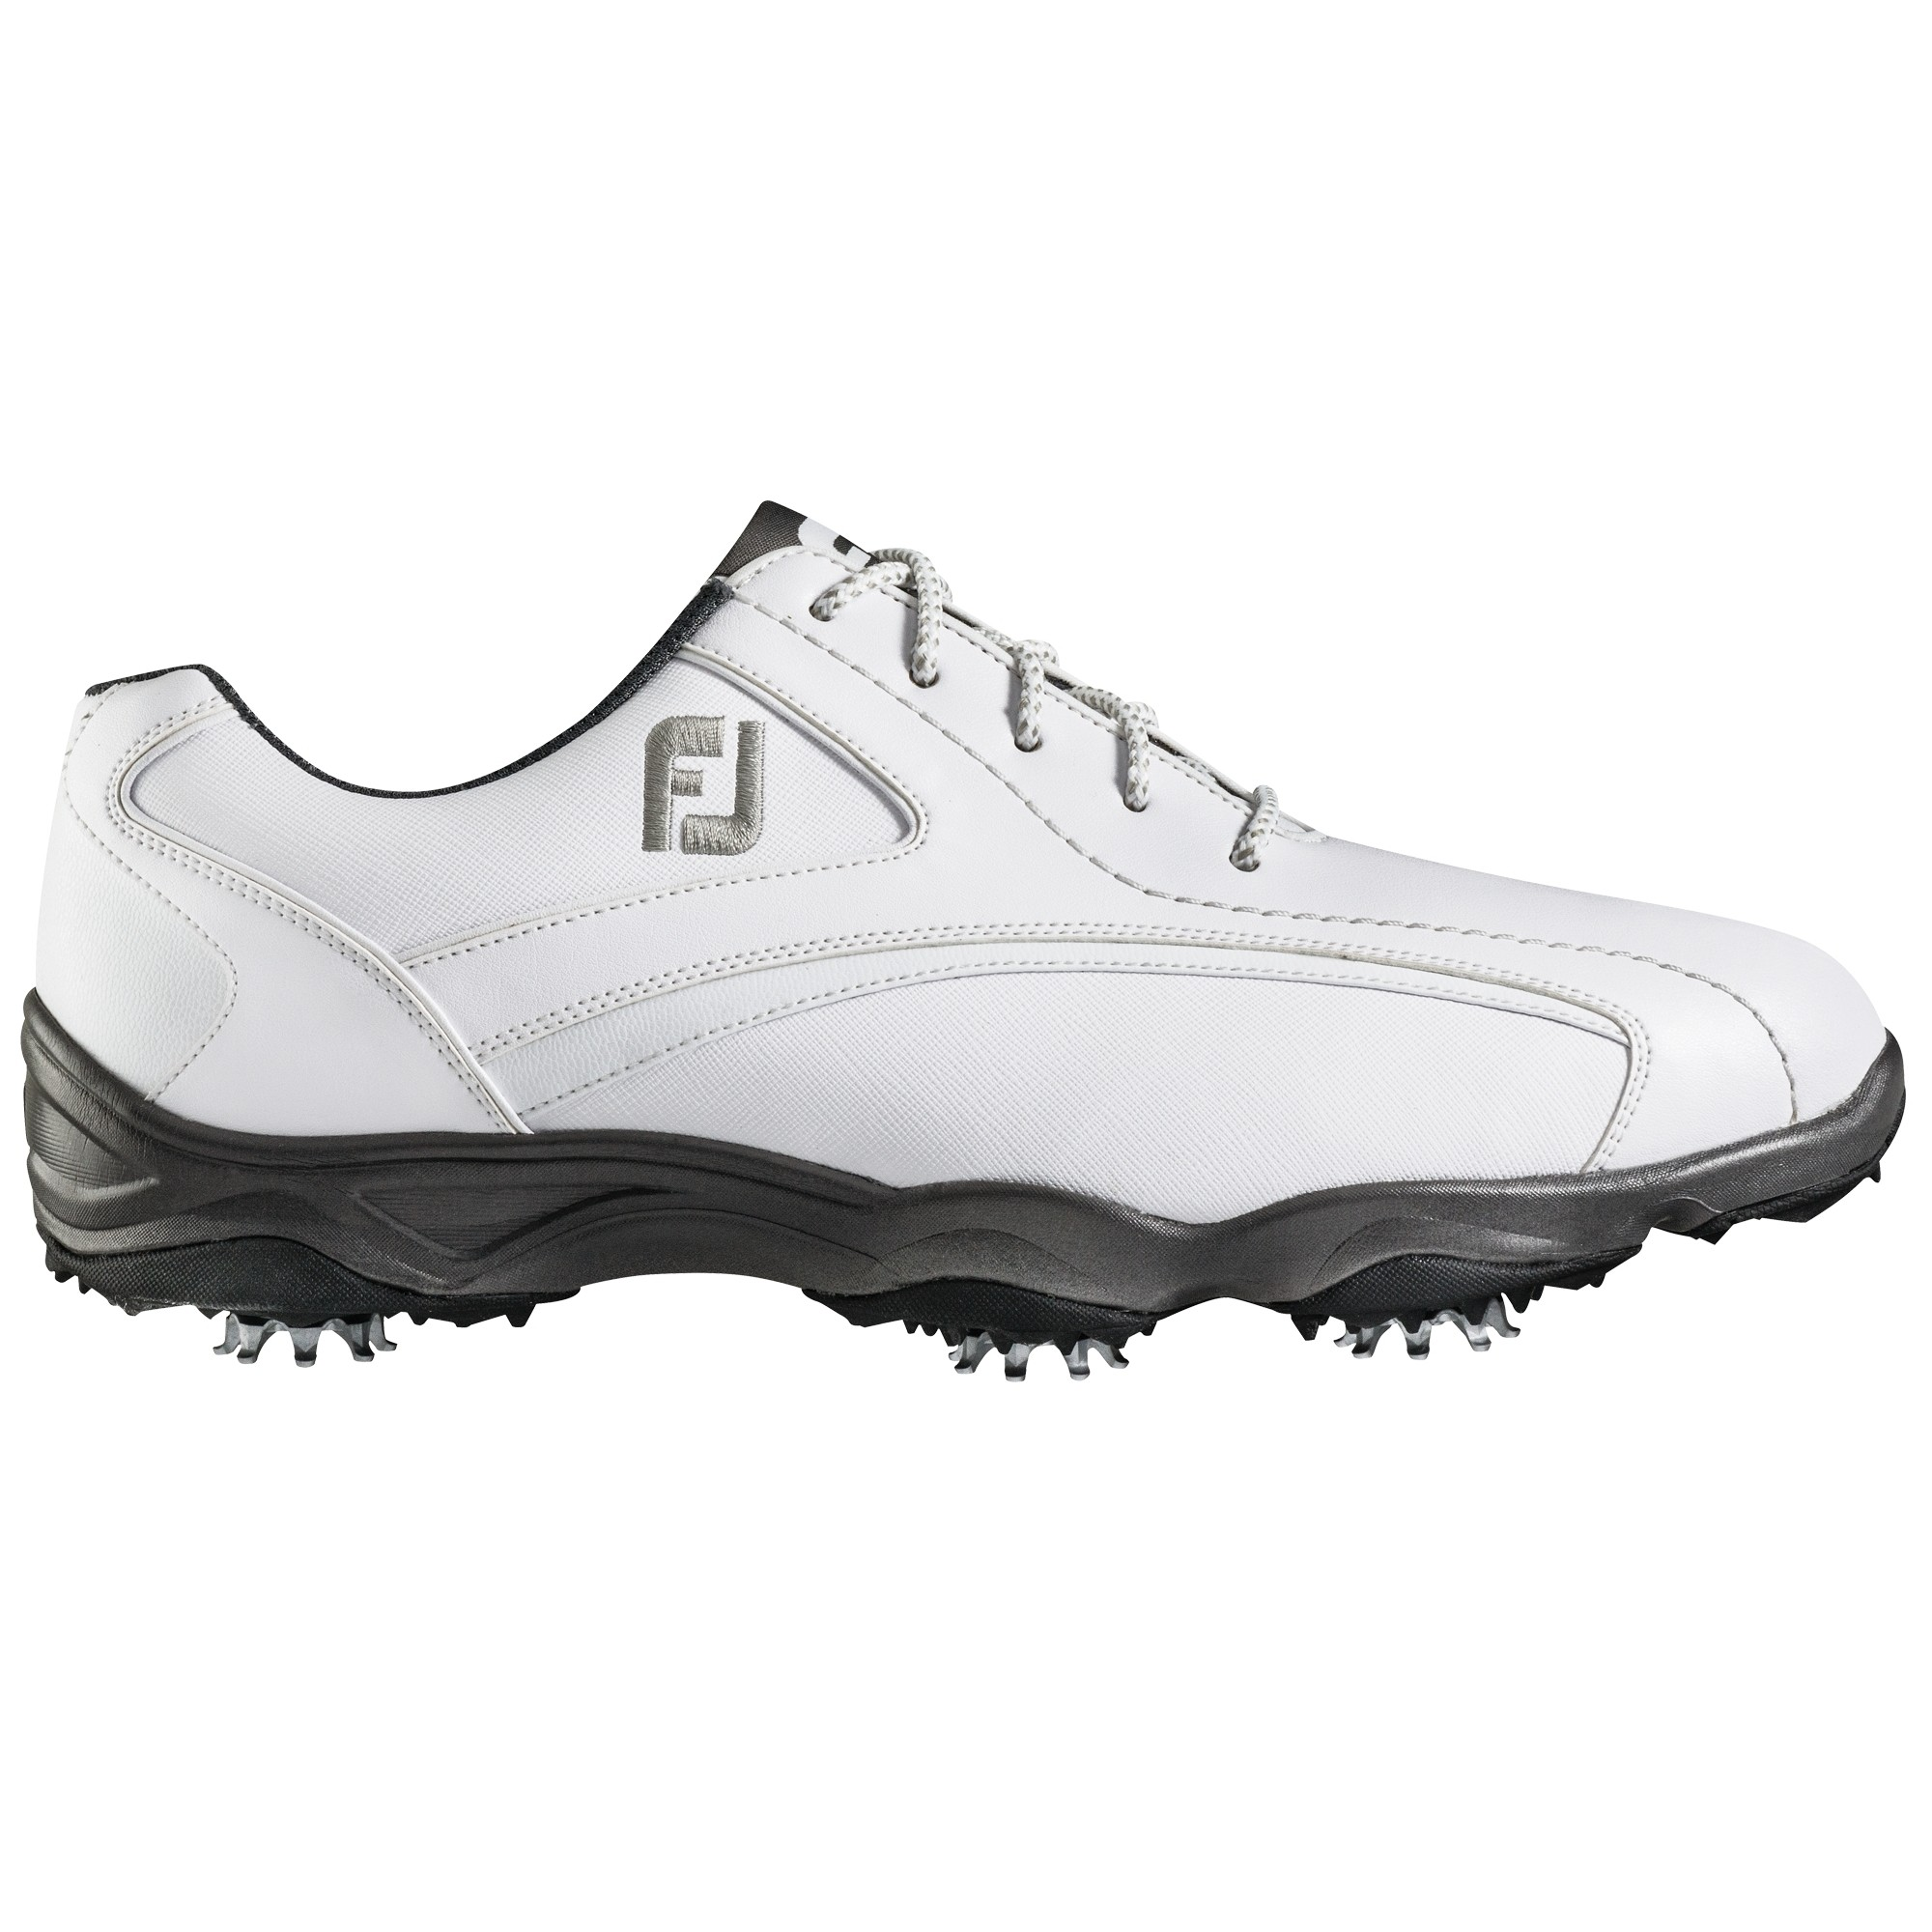 Details Footjoy Mens Superlites Golf Shoes